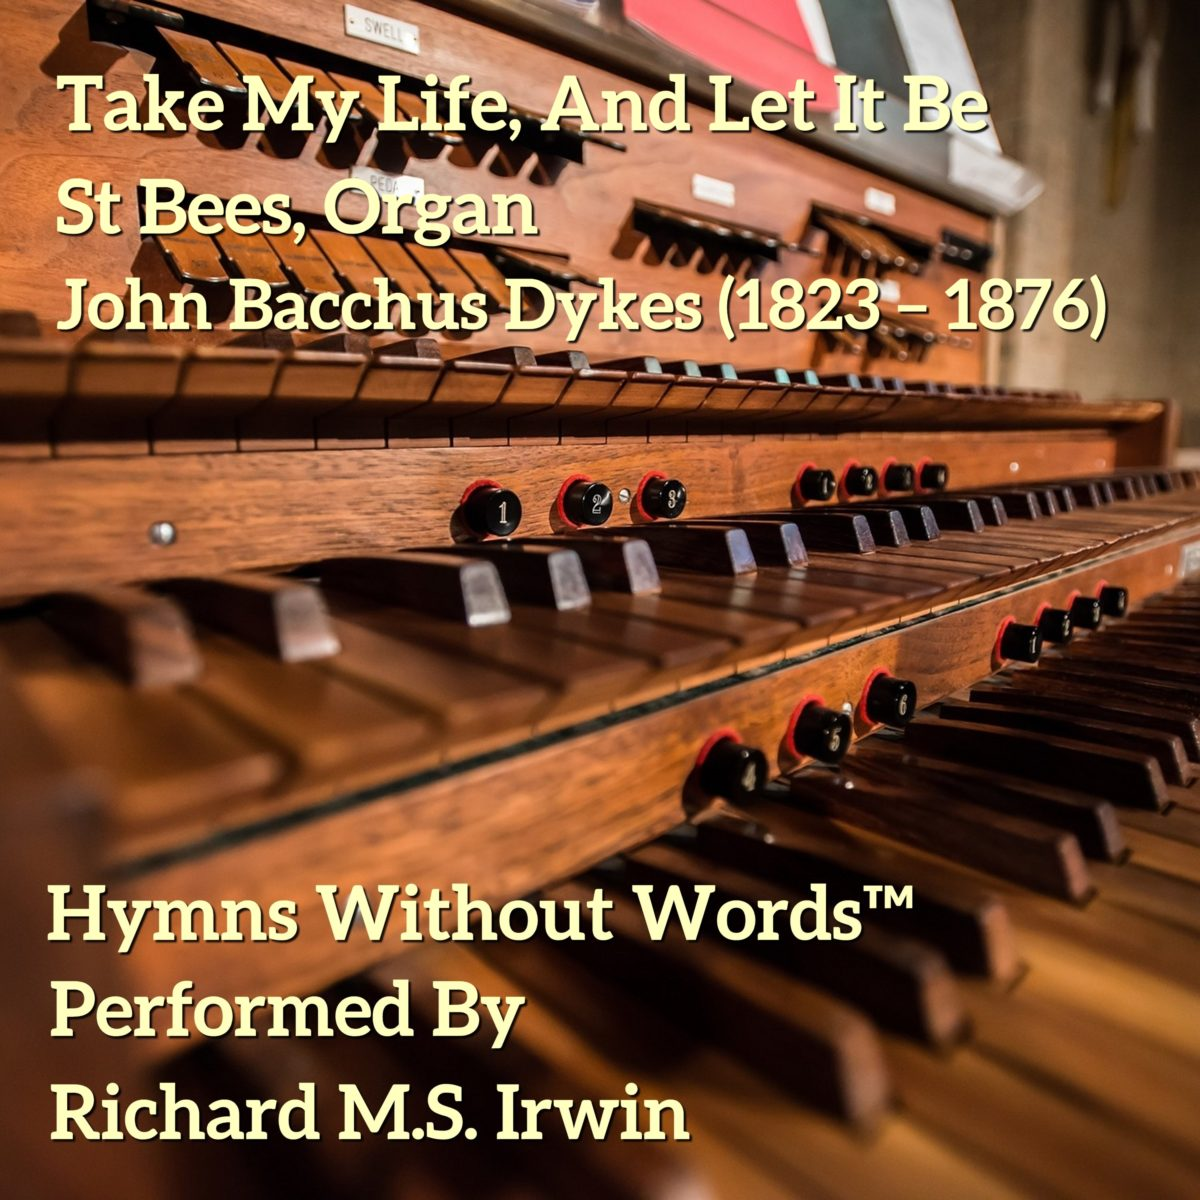 Take My Life And Let It Be (St Bees, Organ, 6 Verses)